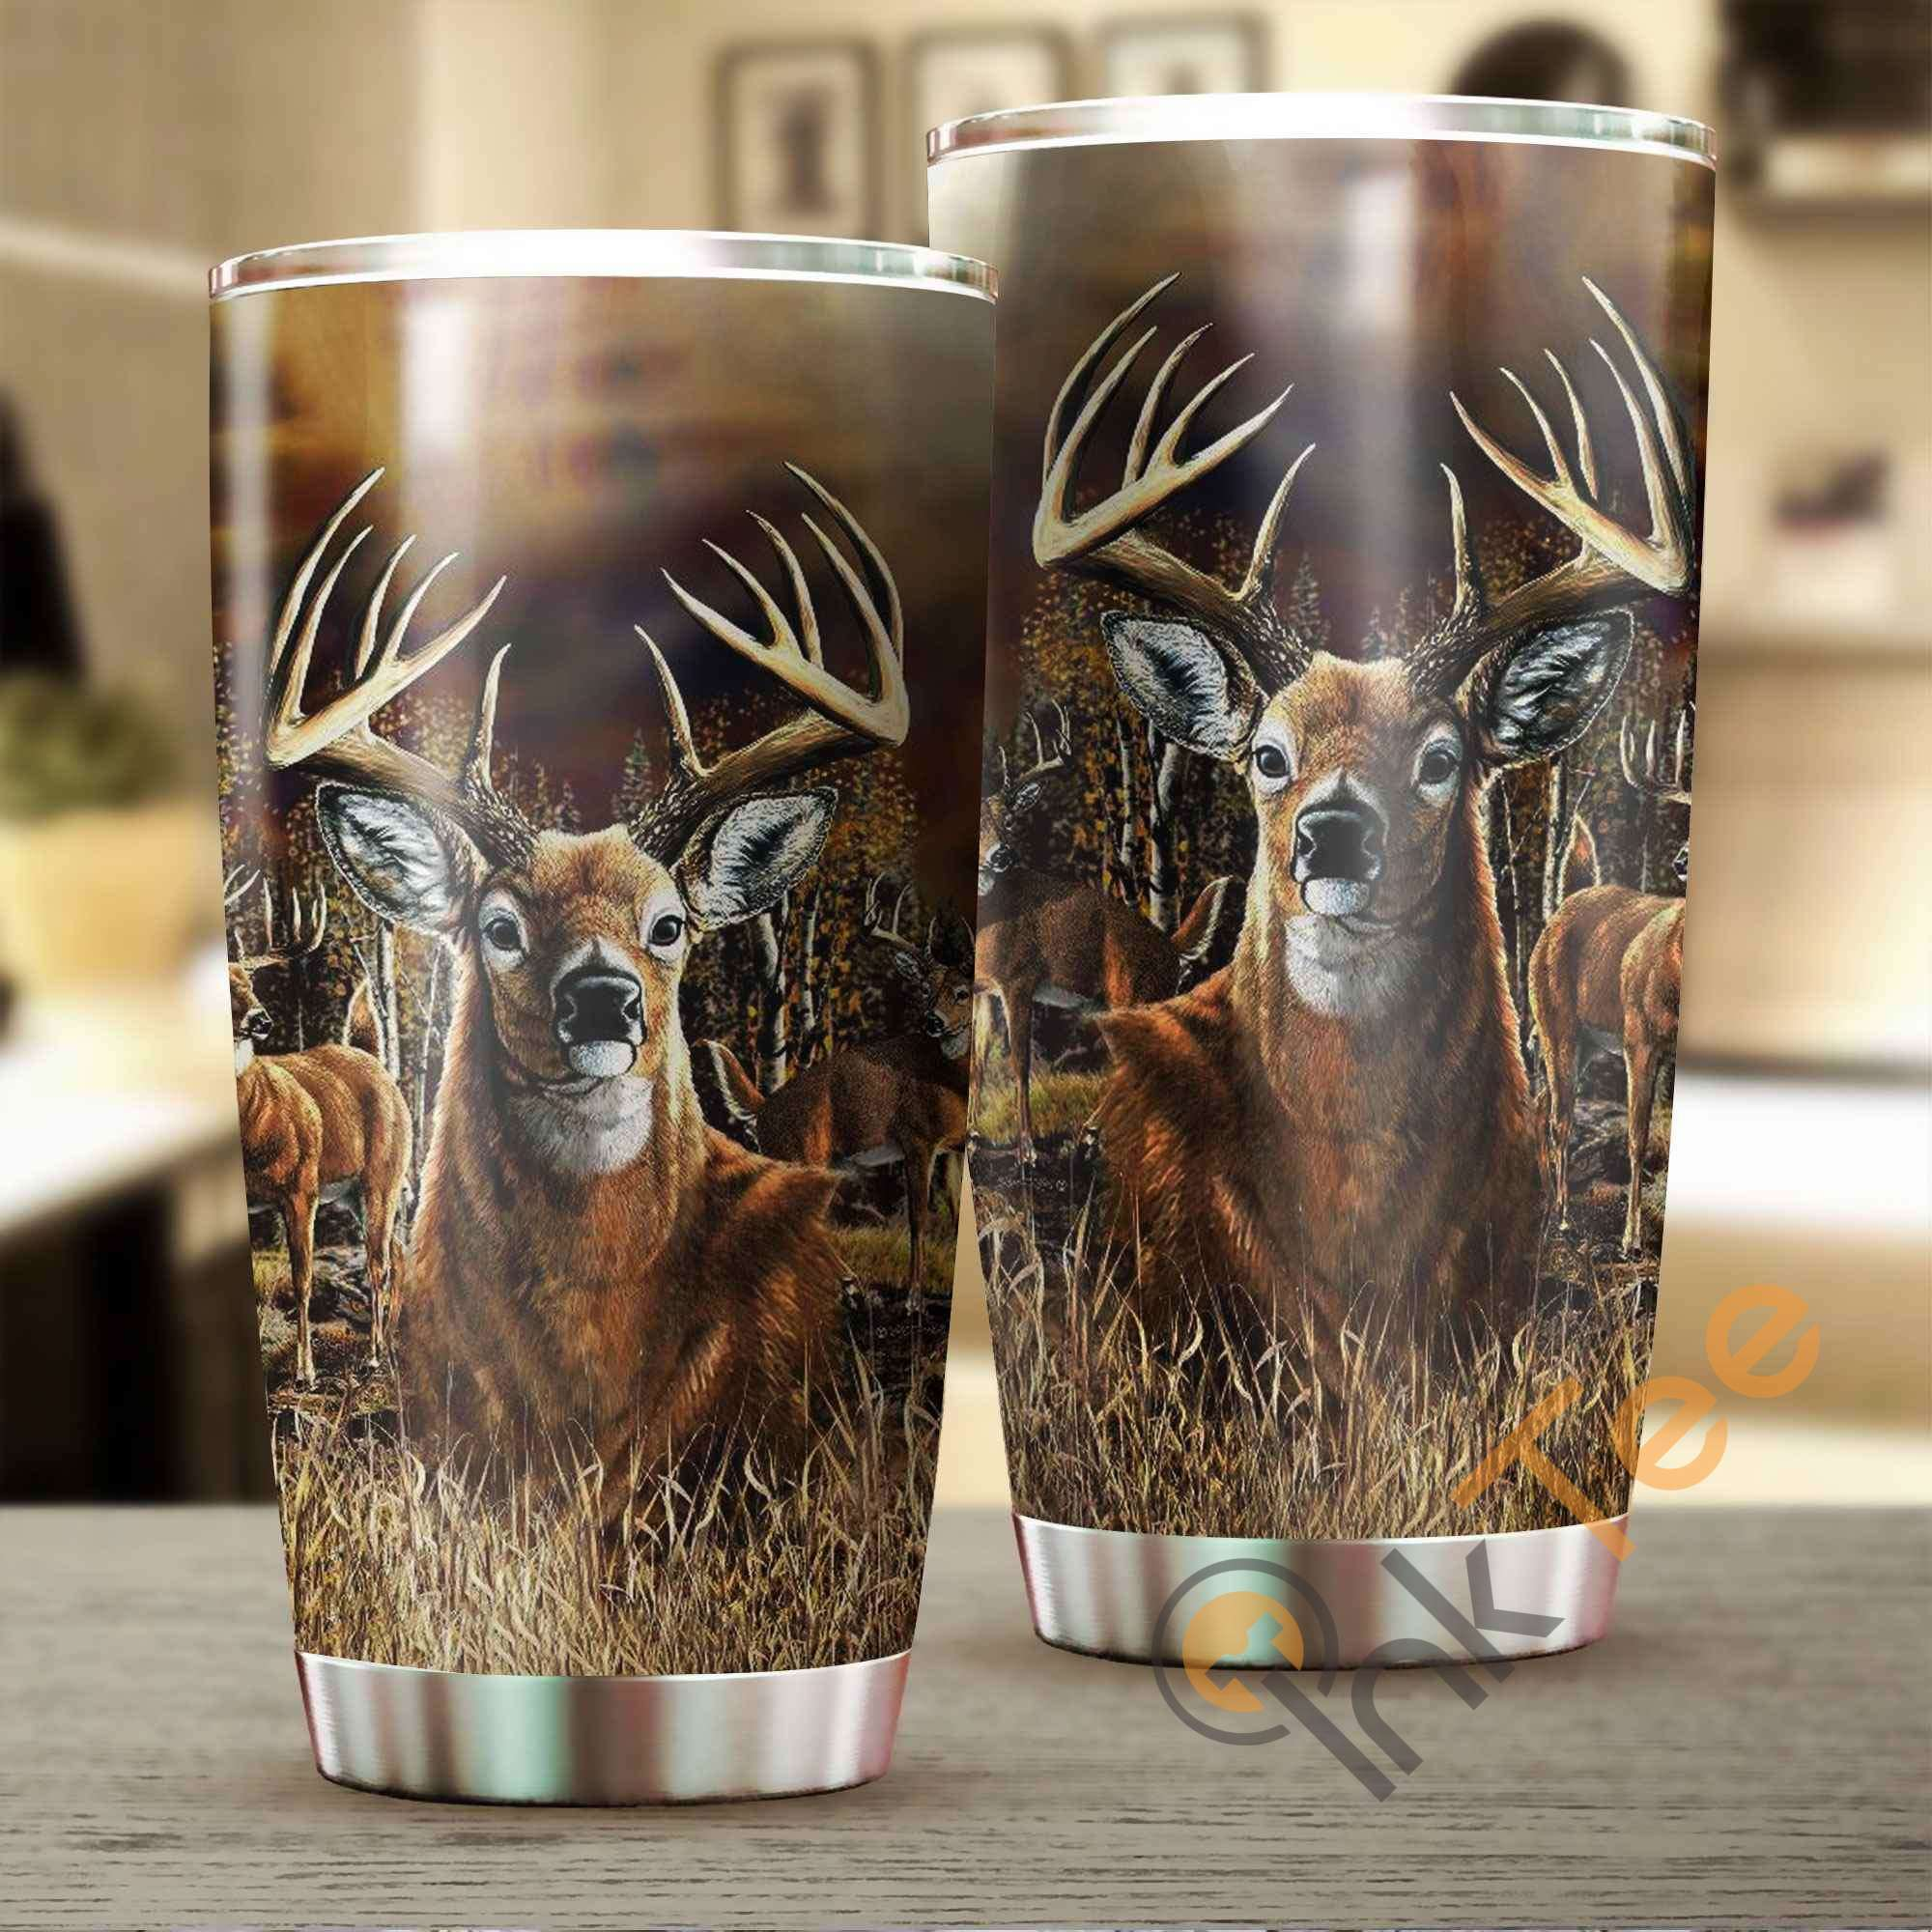 Love Deer Amazon Best Seller Sku 3640 Stainless Steel Tumbler